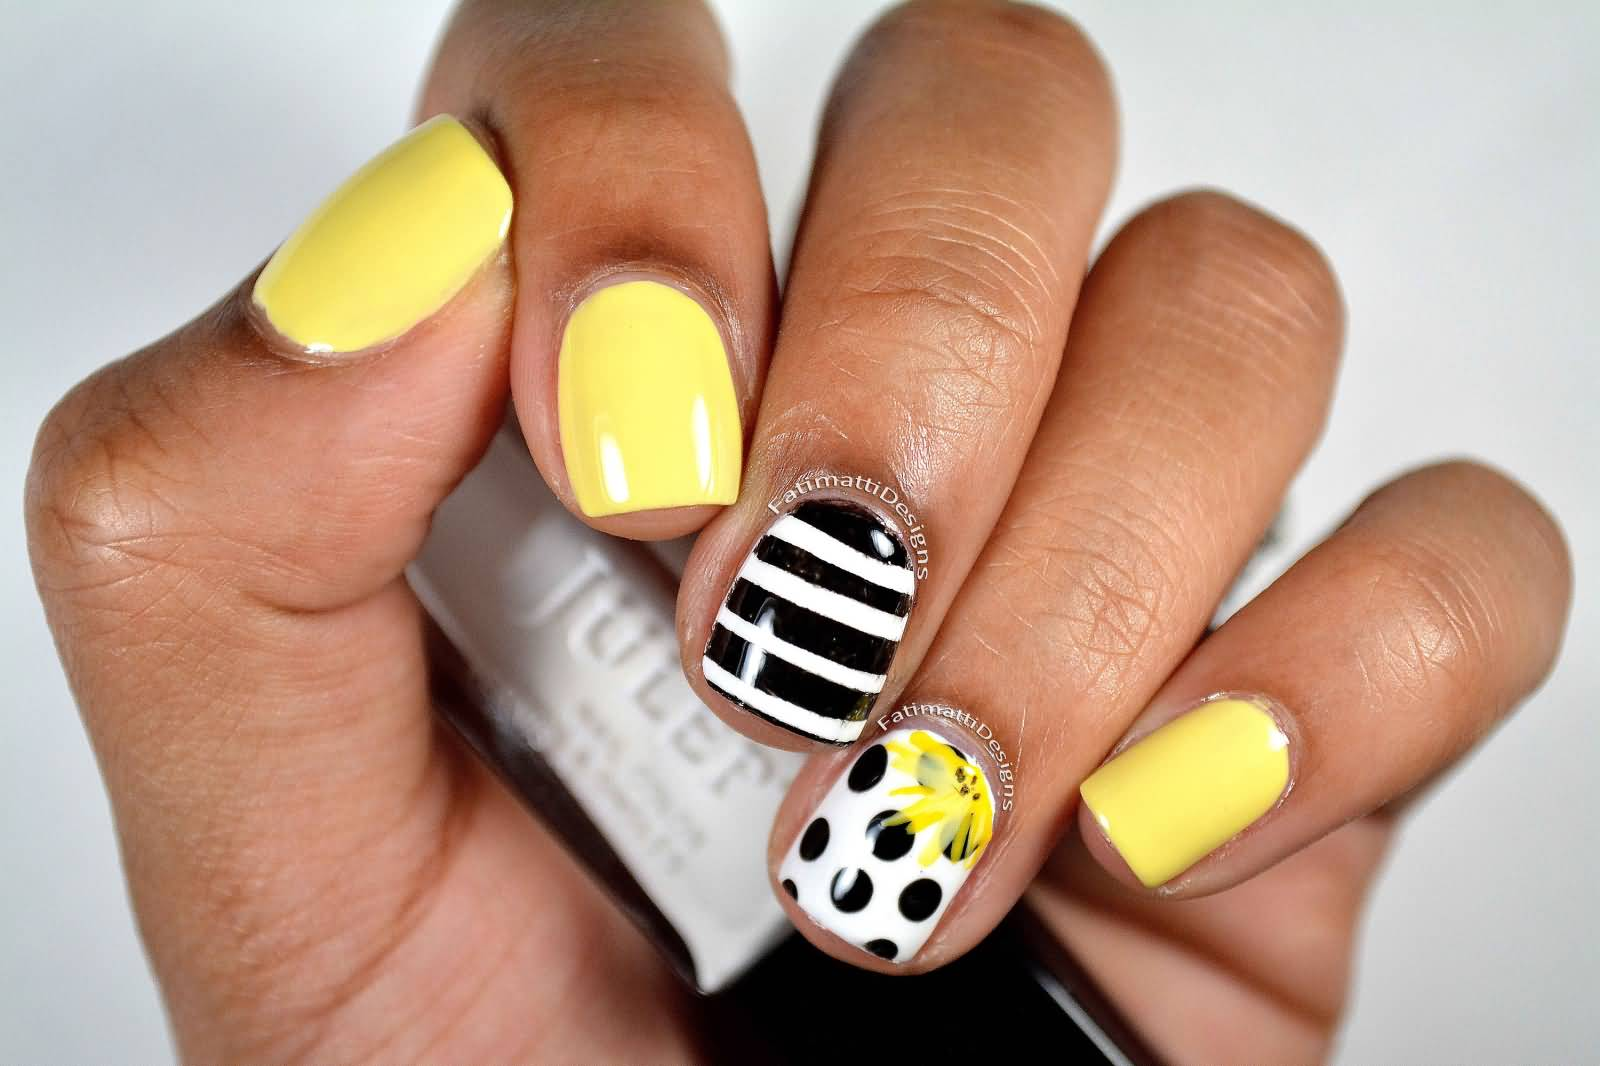 Black And White Polka Dots Nail Art With Yellow Accent Flower With Tutorial Video